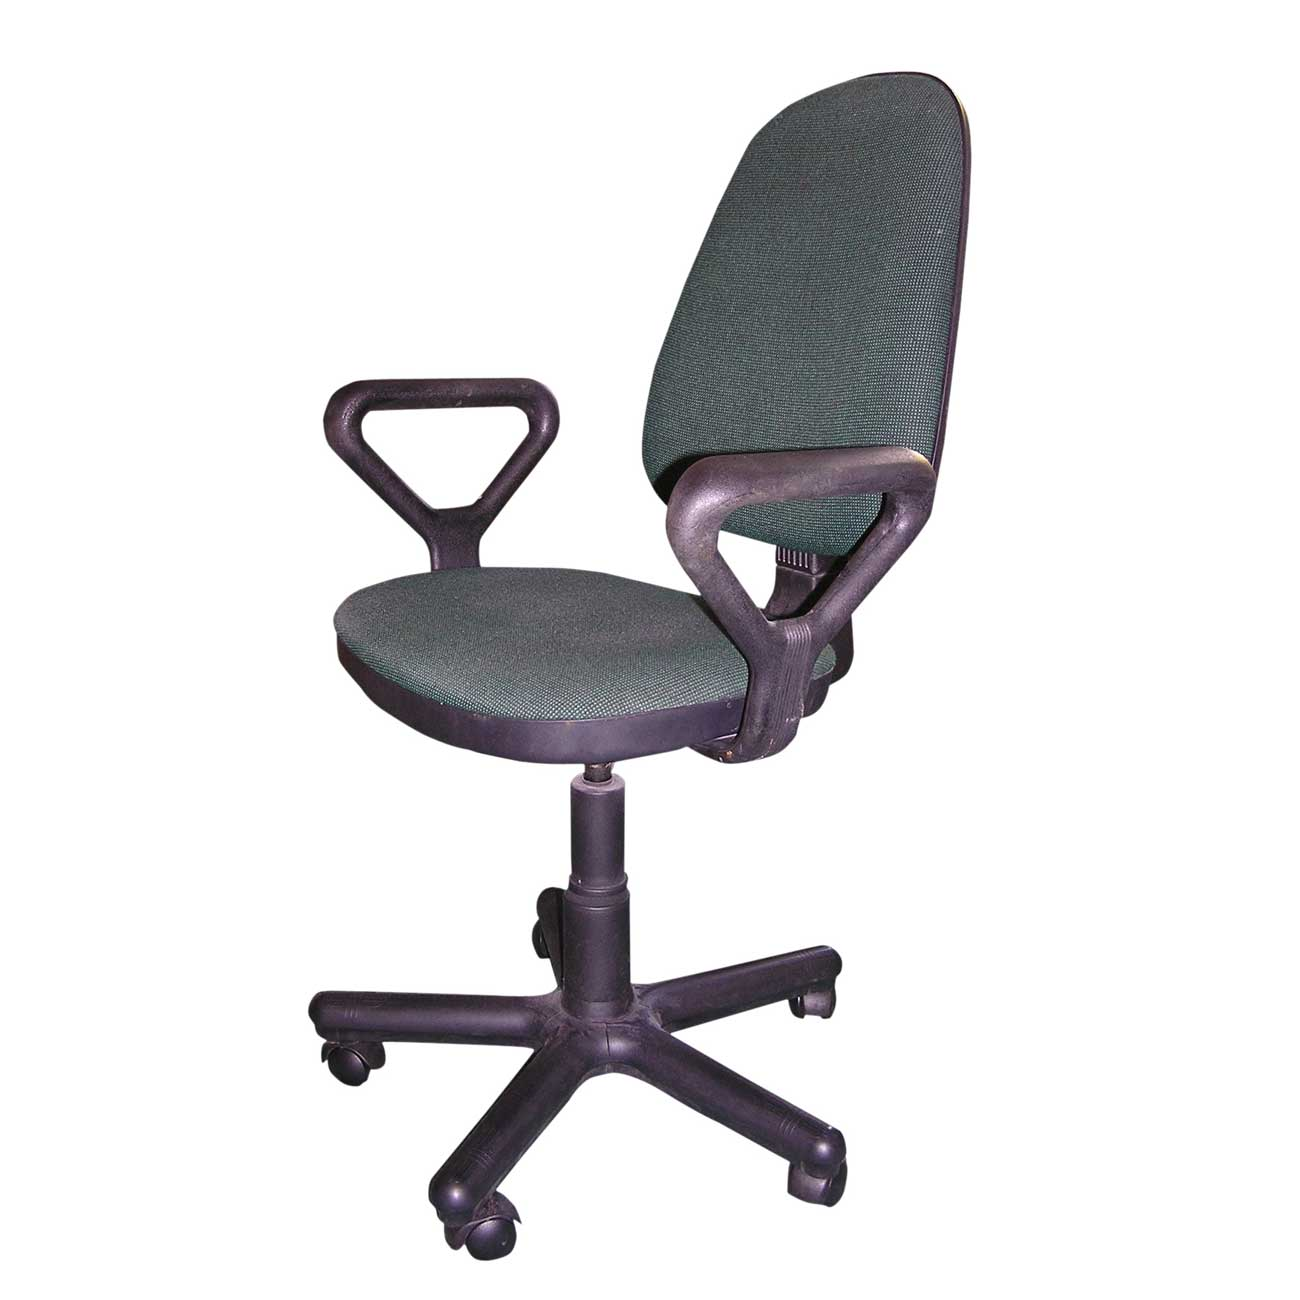 Small Chairs Small Office Chair For Compact Appearance